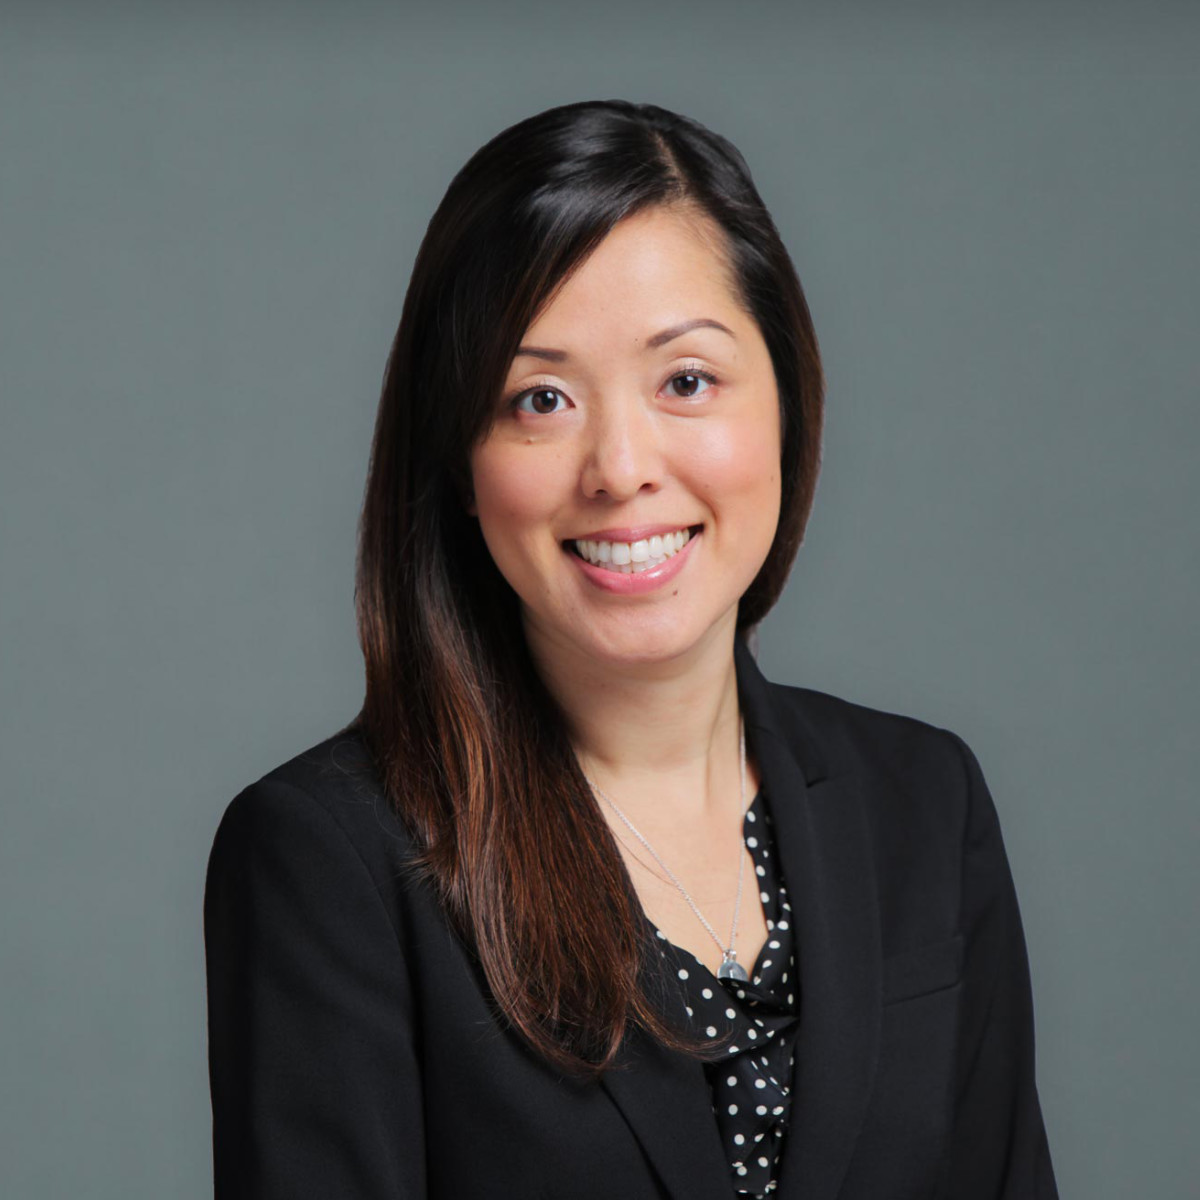 Judy W. Lee,MD. Facial Plastic & Reconstructive Surgery, Otolaryngology